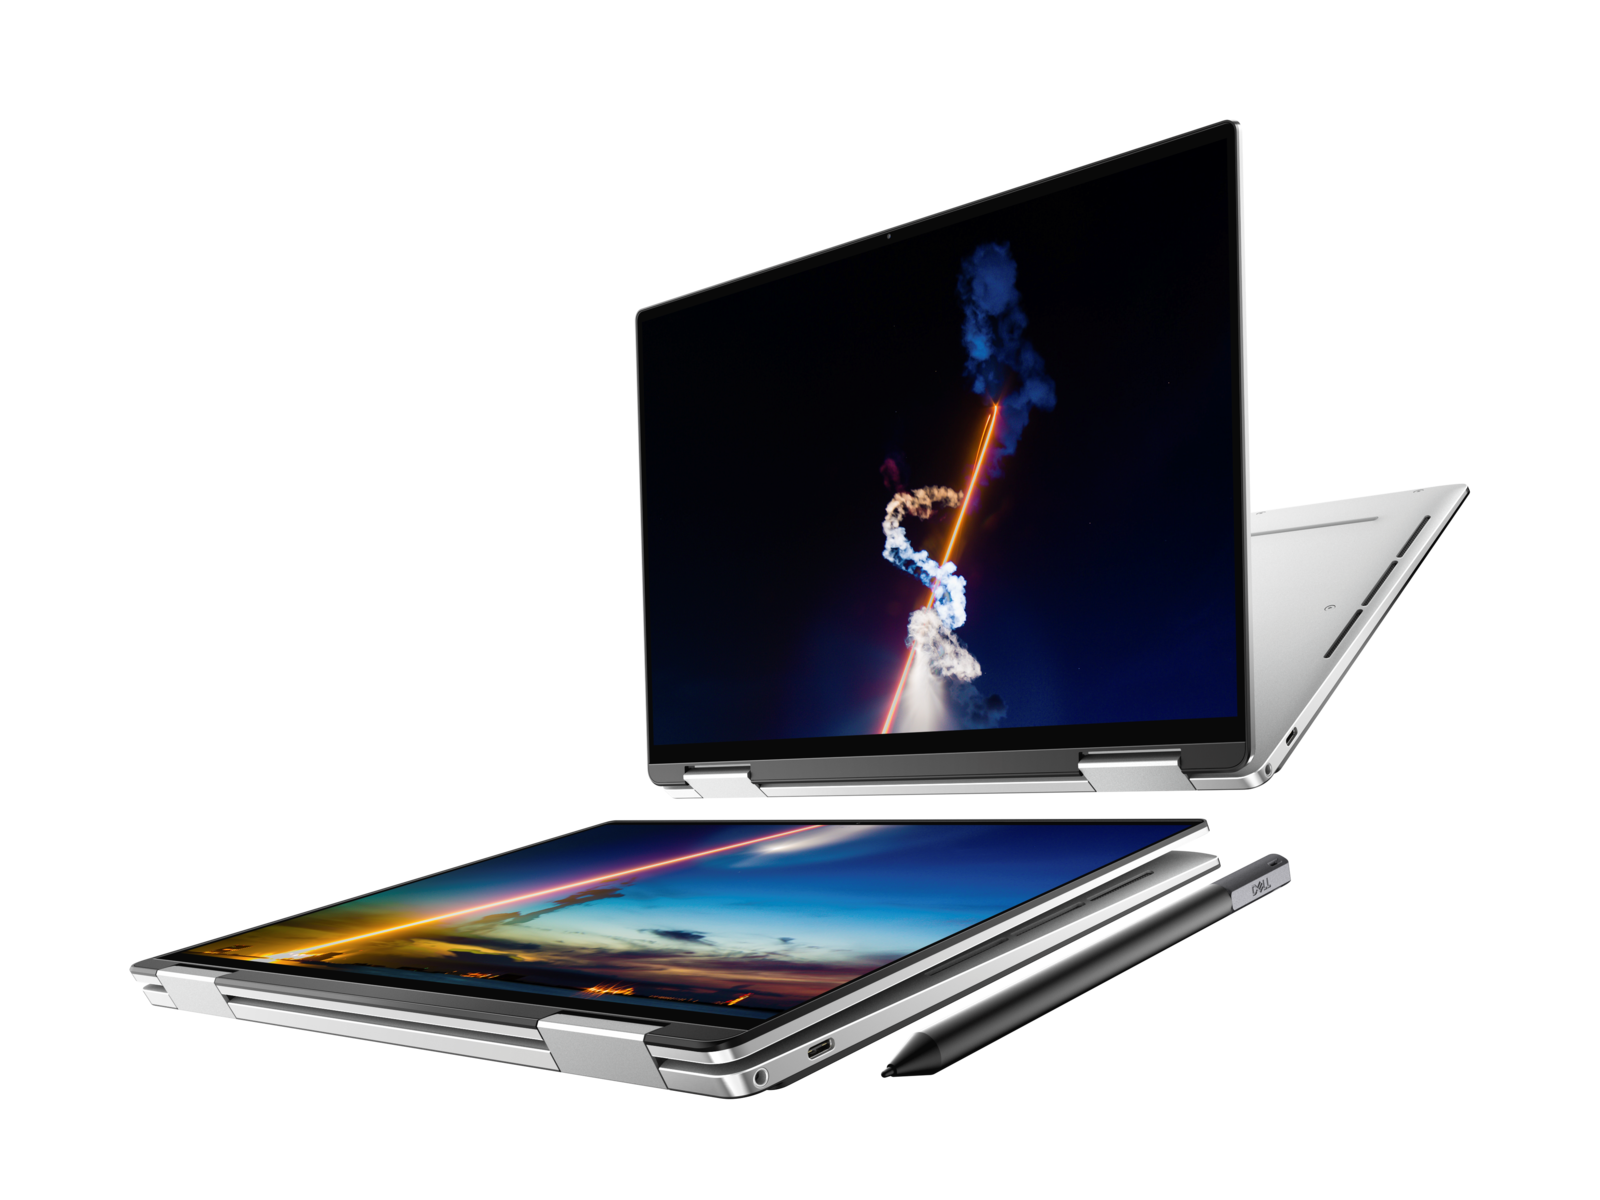 Dell's newly announced XPS 2-in-1 features 10th gen Intel processors